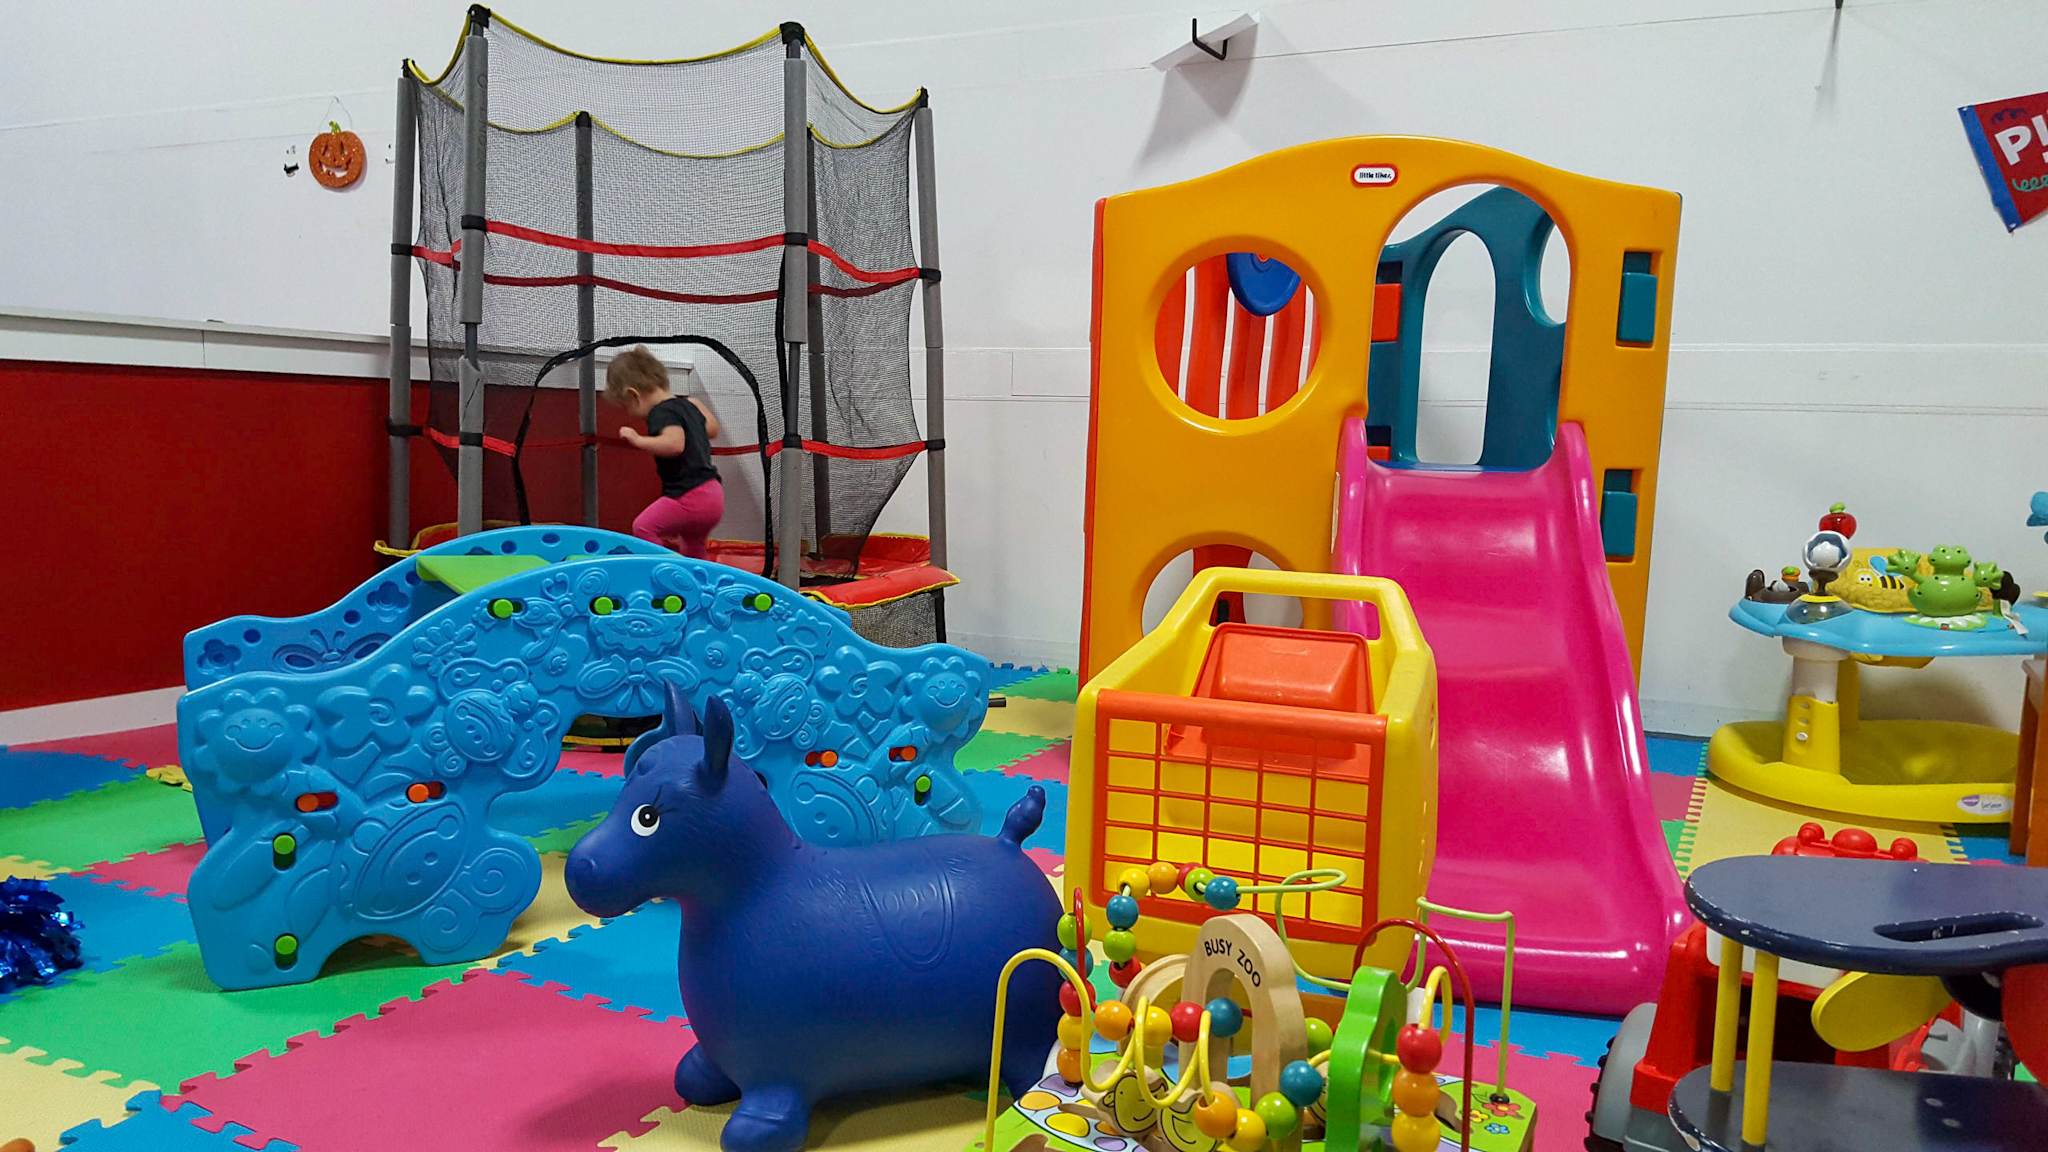 toddler jumping on trampoline in play area